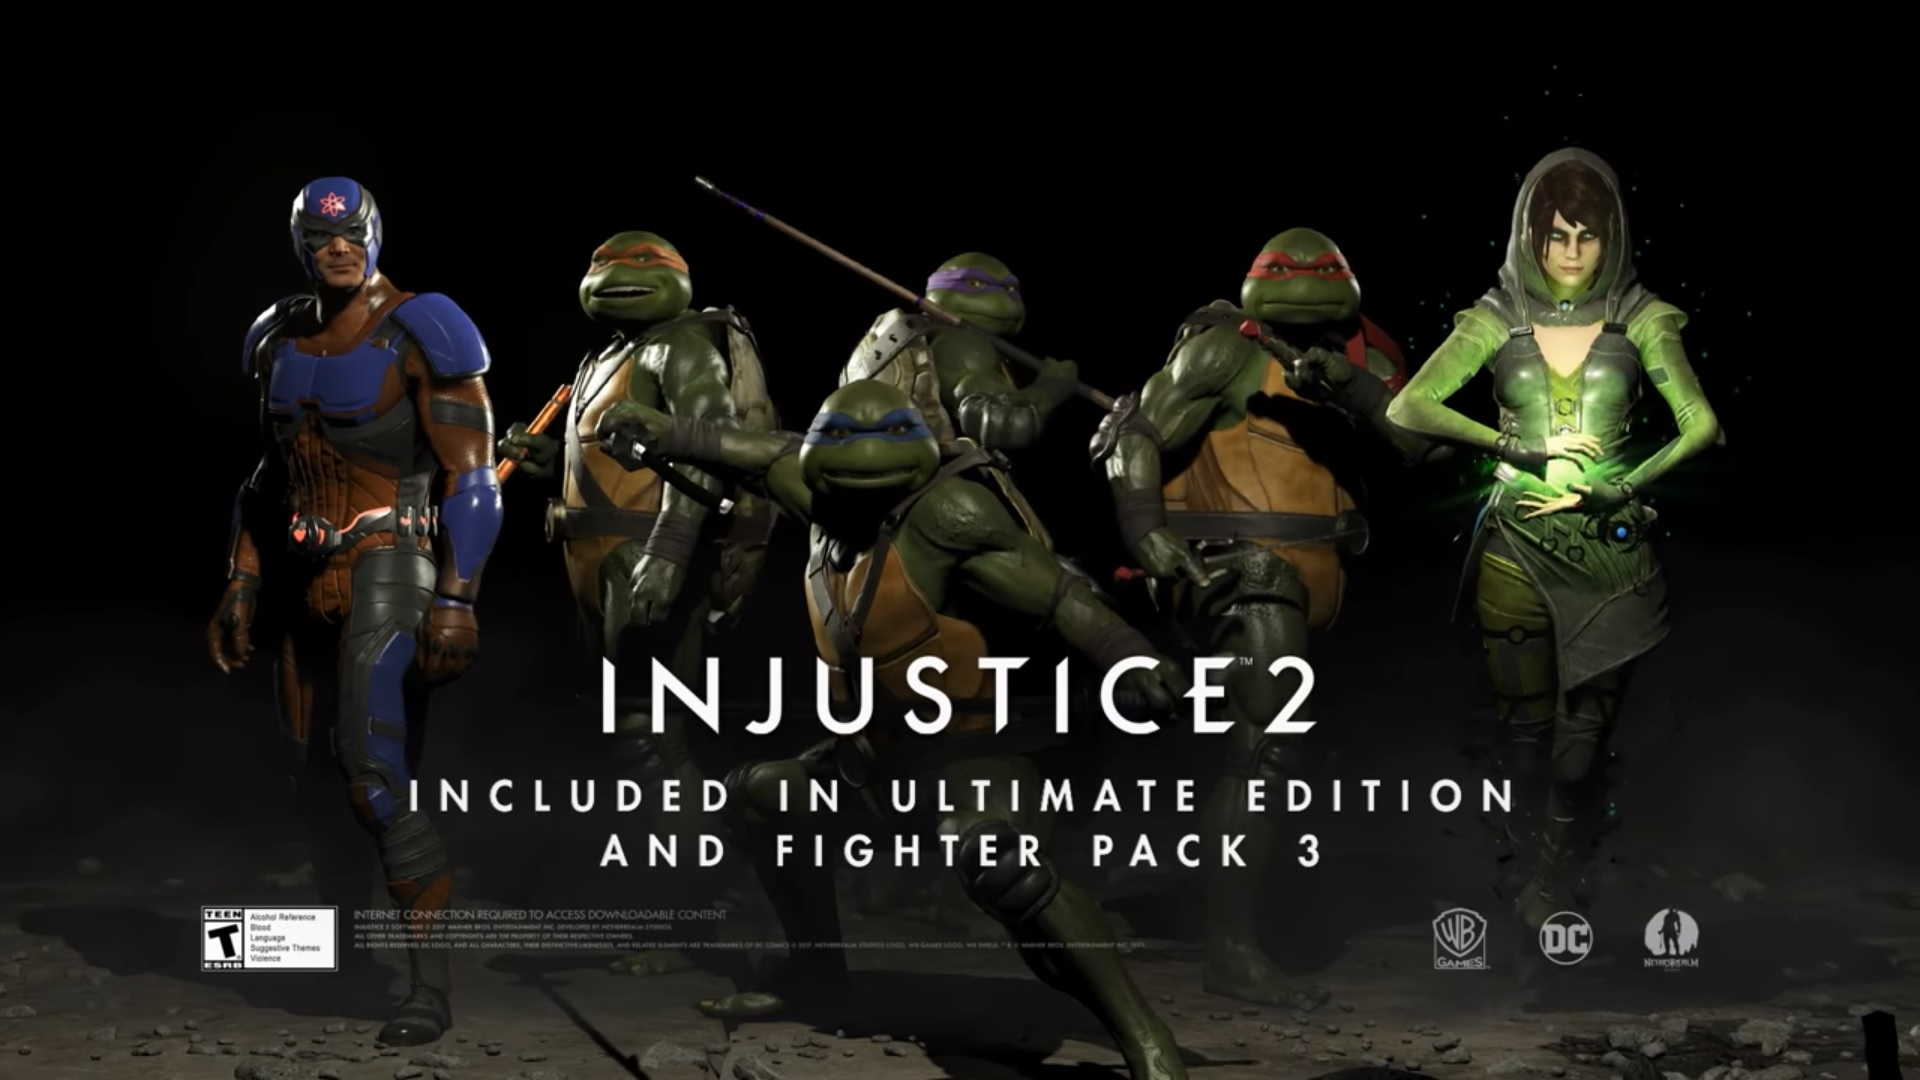 Injustice 2 Fighters Pack 3: Atom, Enchantress, Tennage Mutant Ninja Turtles